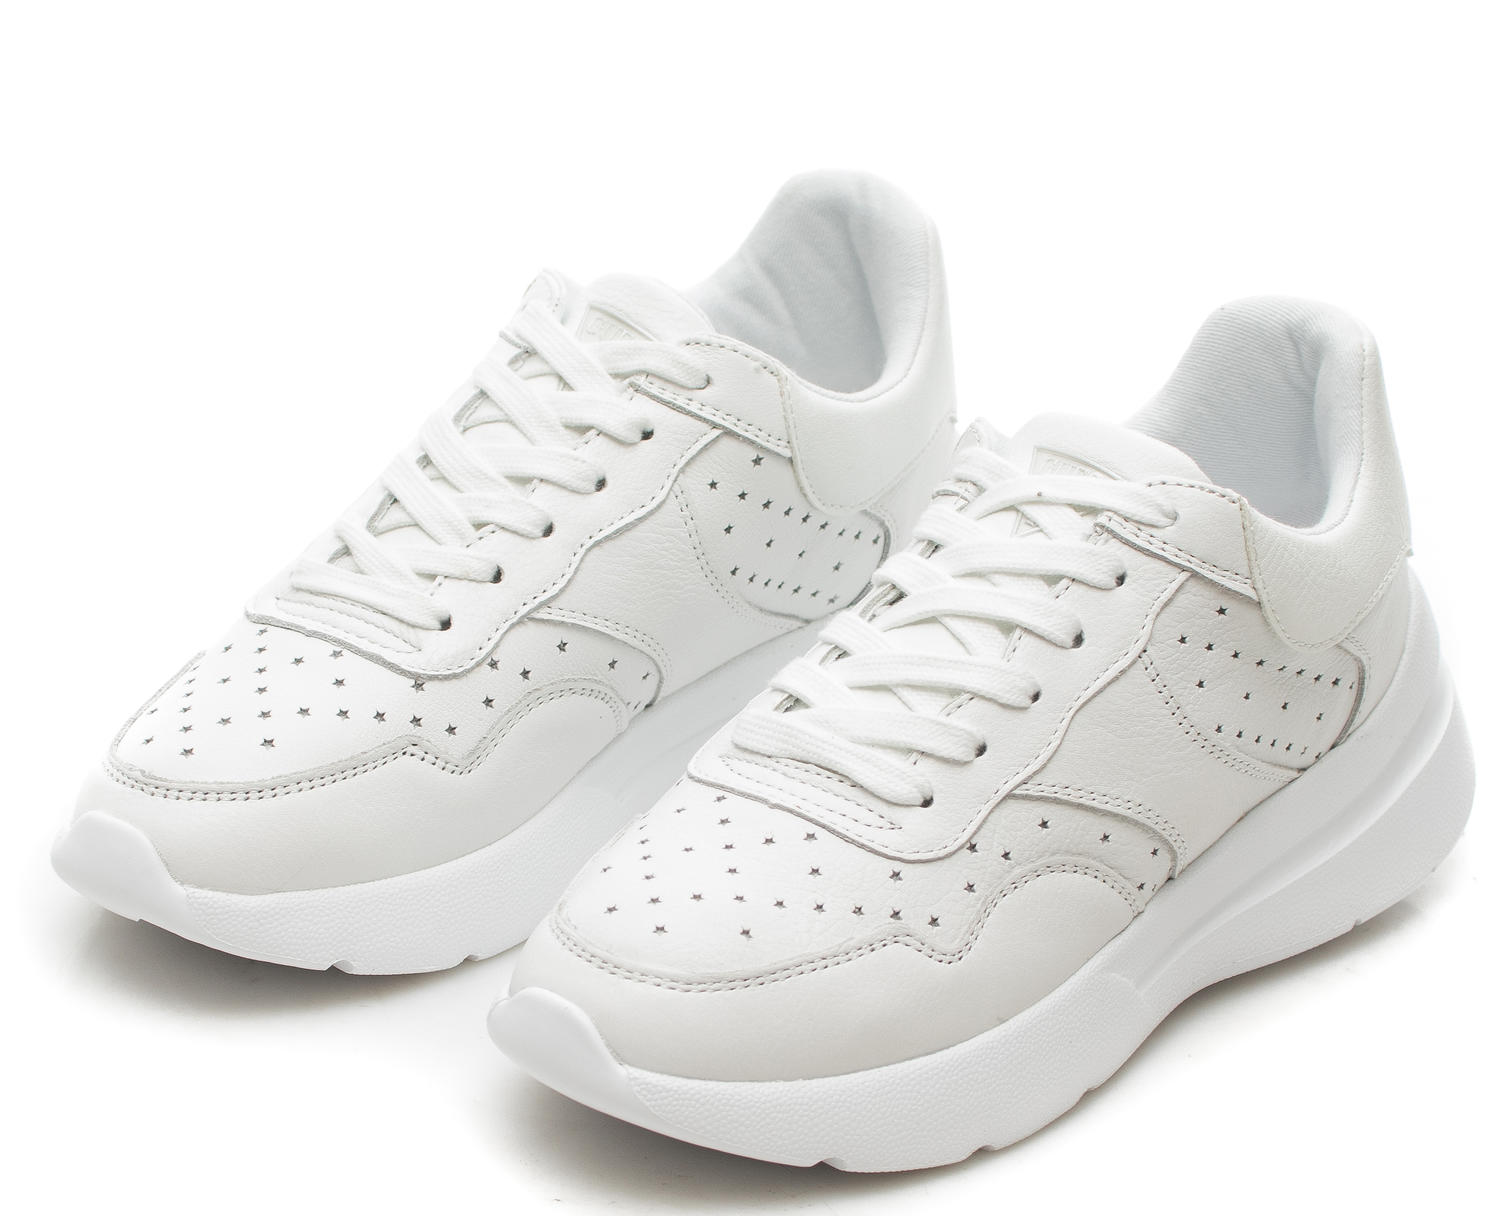 cc94f48849a Guess Sneakers Minca Active Lady White - Shop Online At Best Prices!